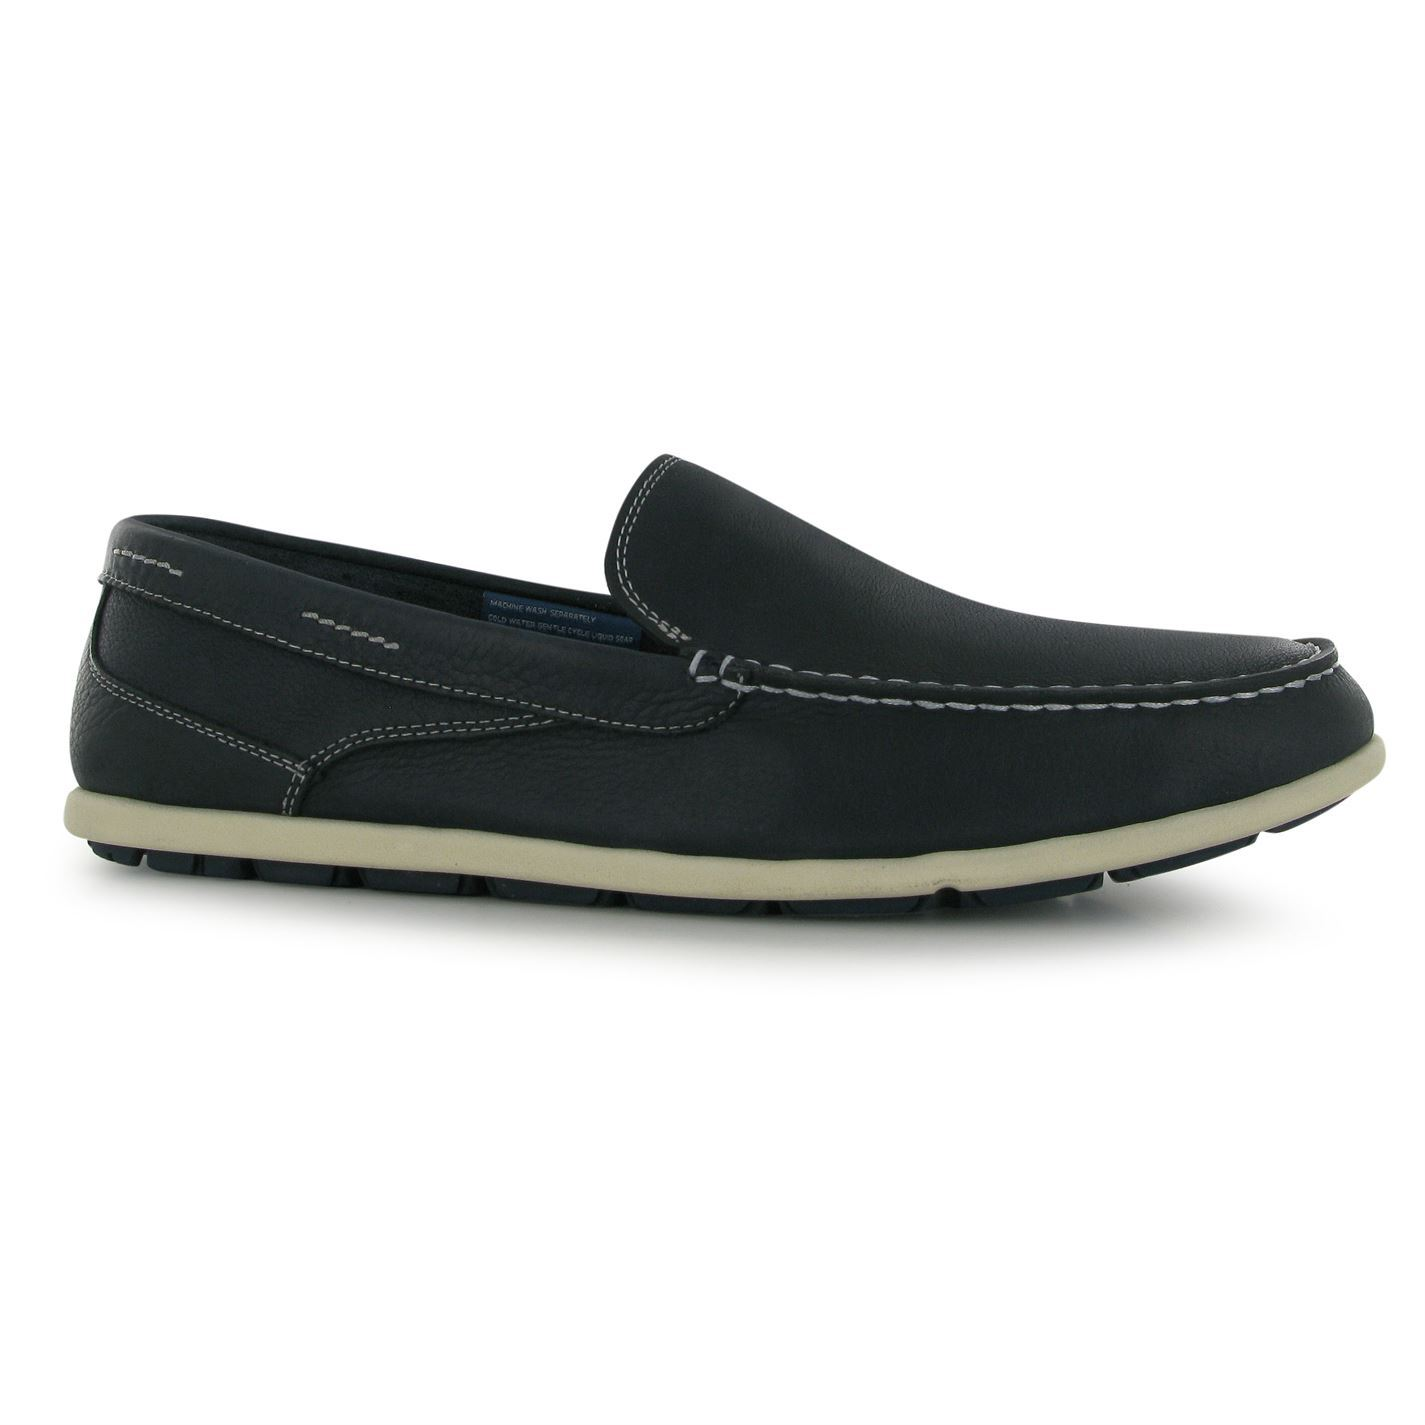 Casual Shoes For Men Over